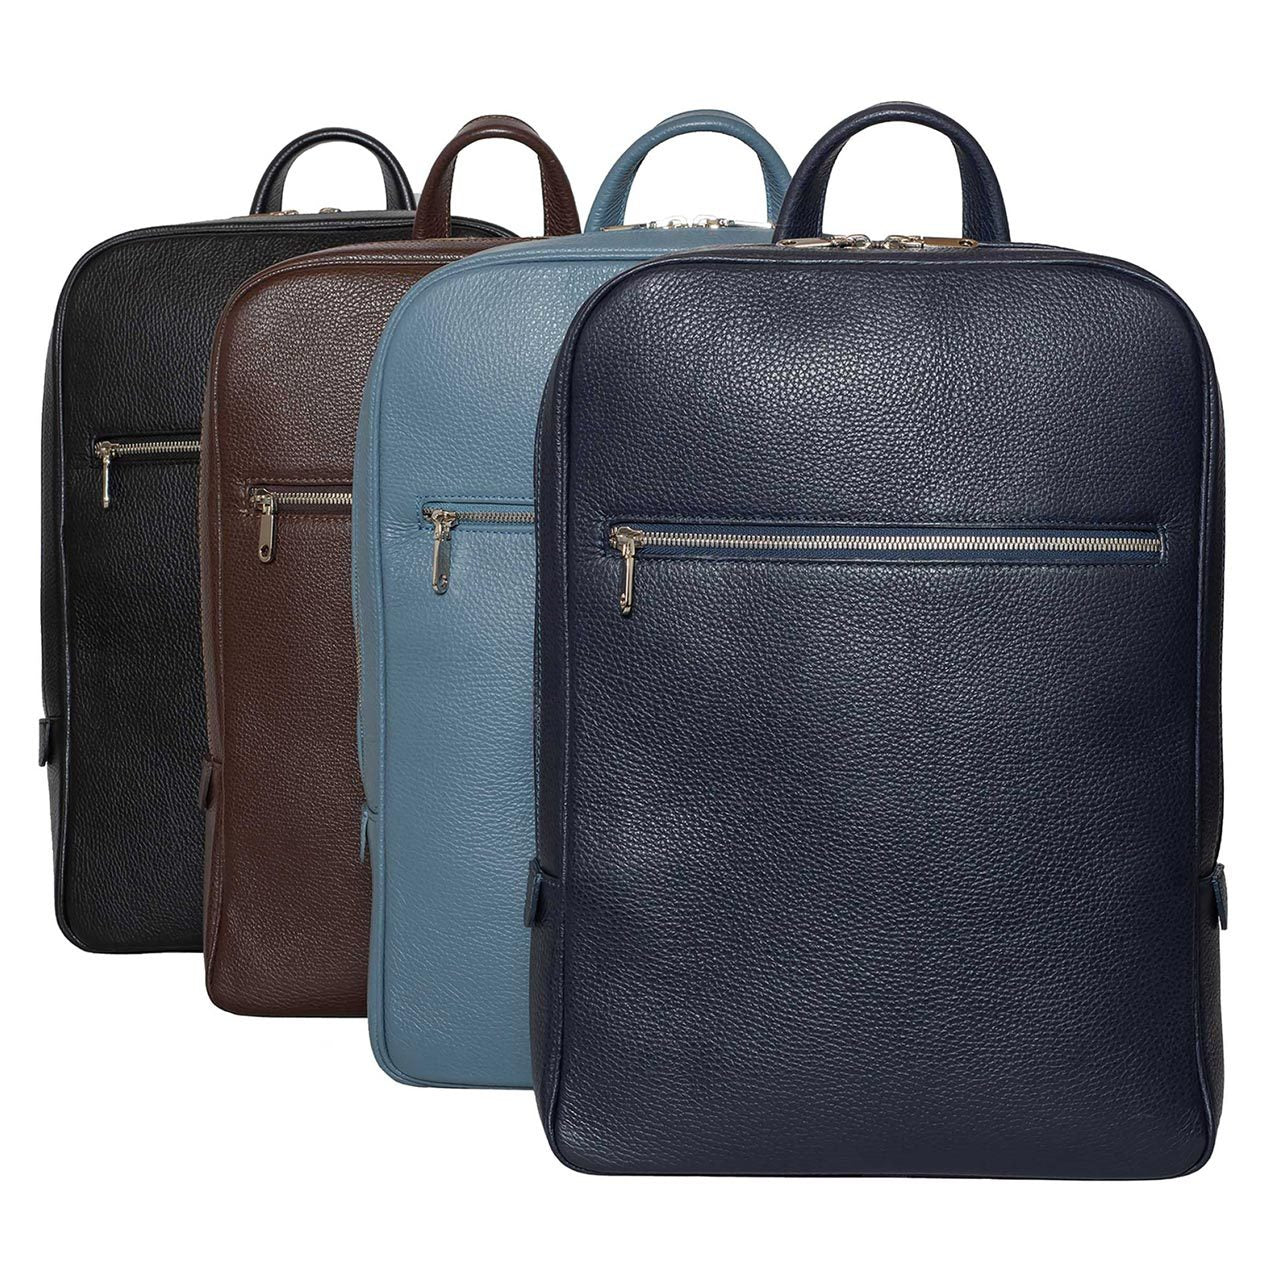 DiLoro Italian Leather Backpack in various colors. These classic backpacks are handmade in Italy, full grain leather and superior workmanship.